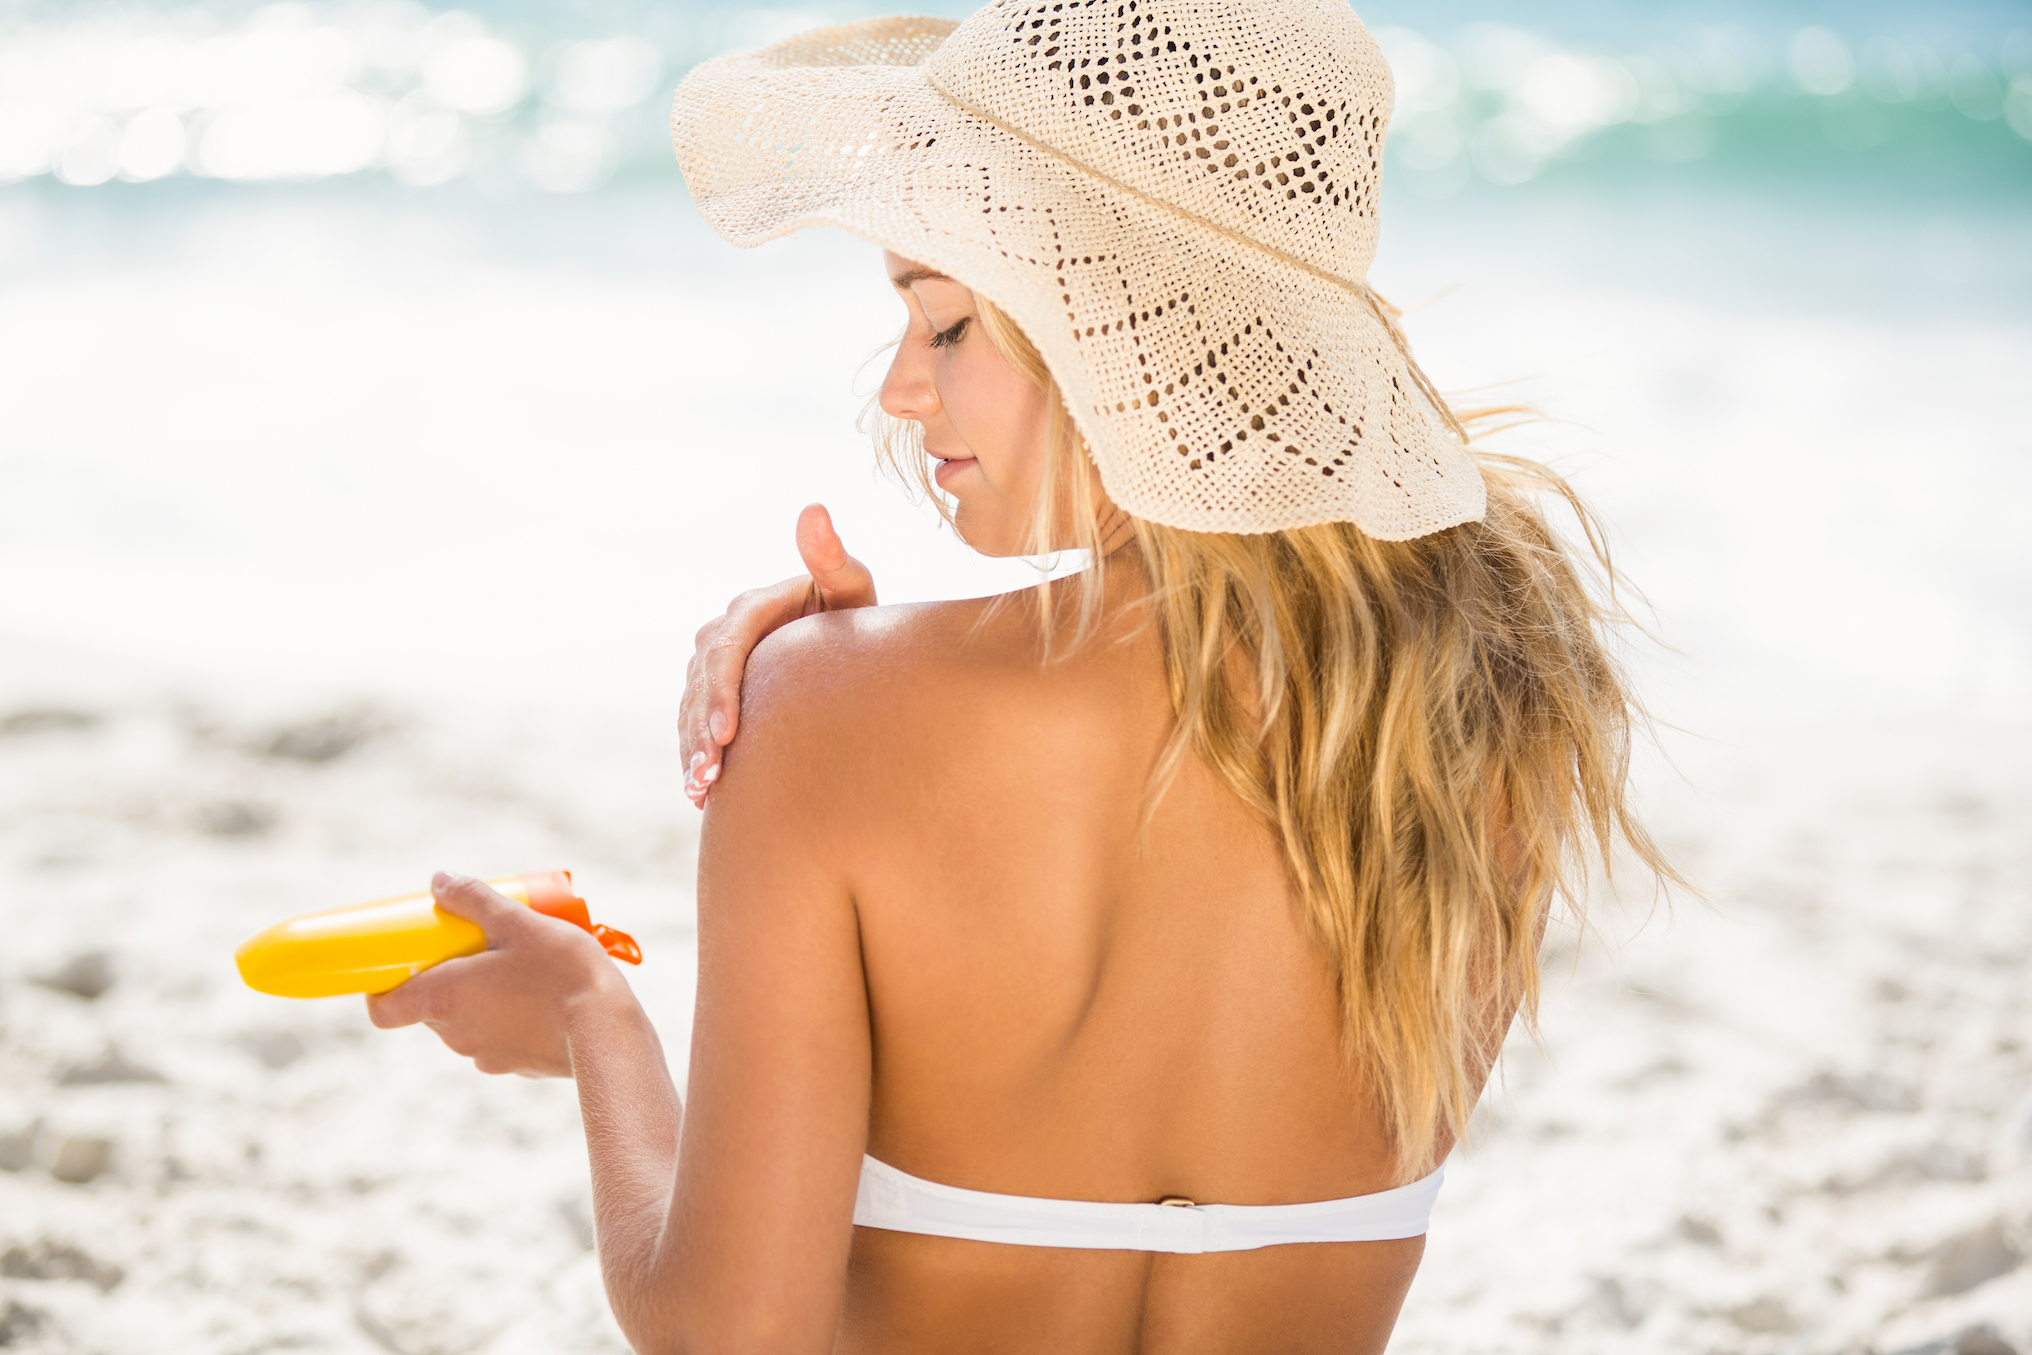 Researchers have developed a new, natural sunscreen that mimics the body's own defense systems for ultraviolet rays.